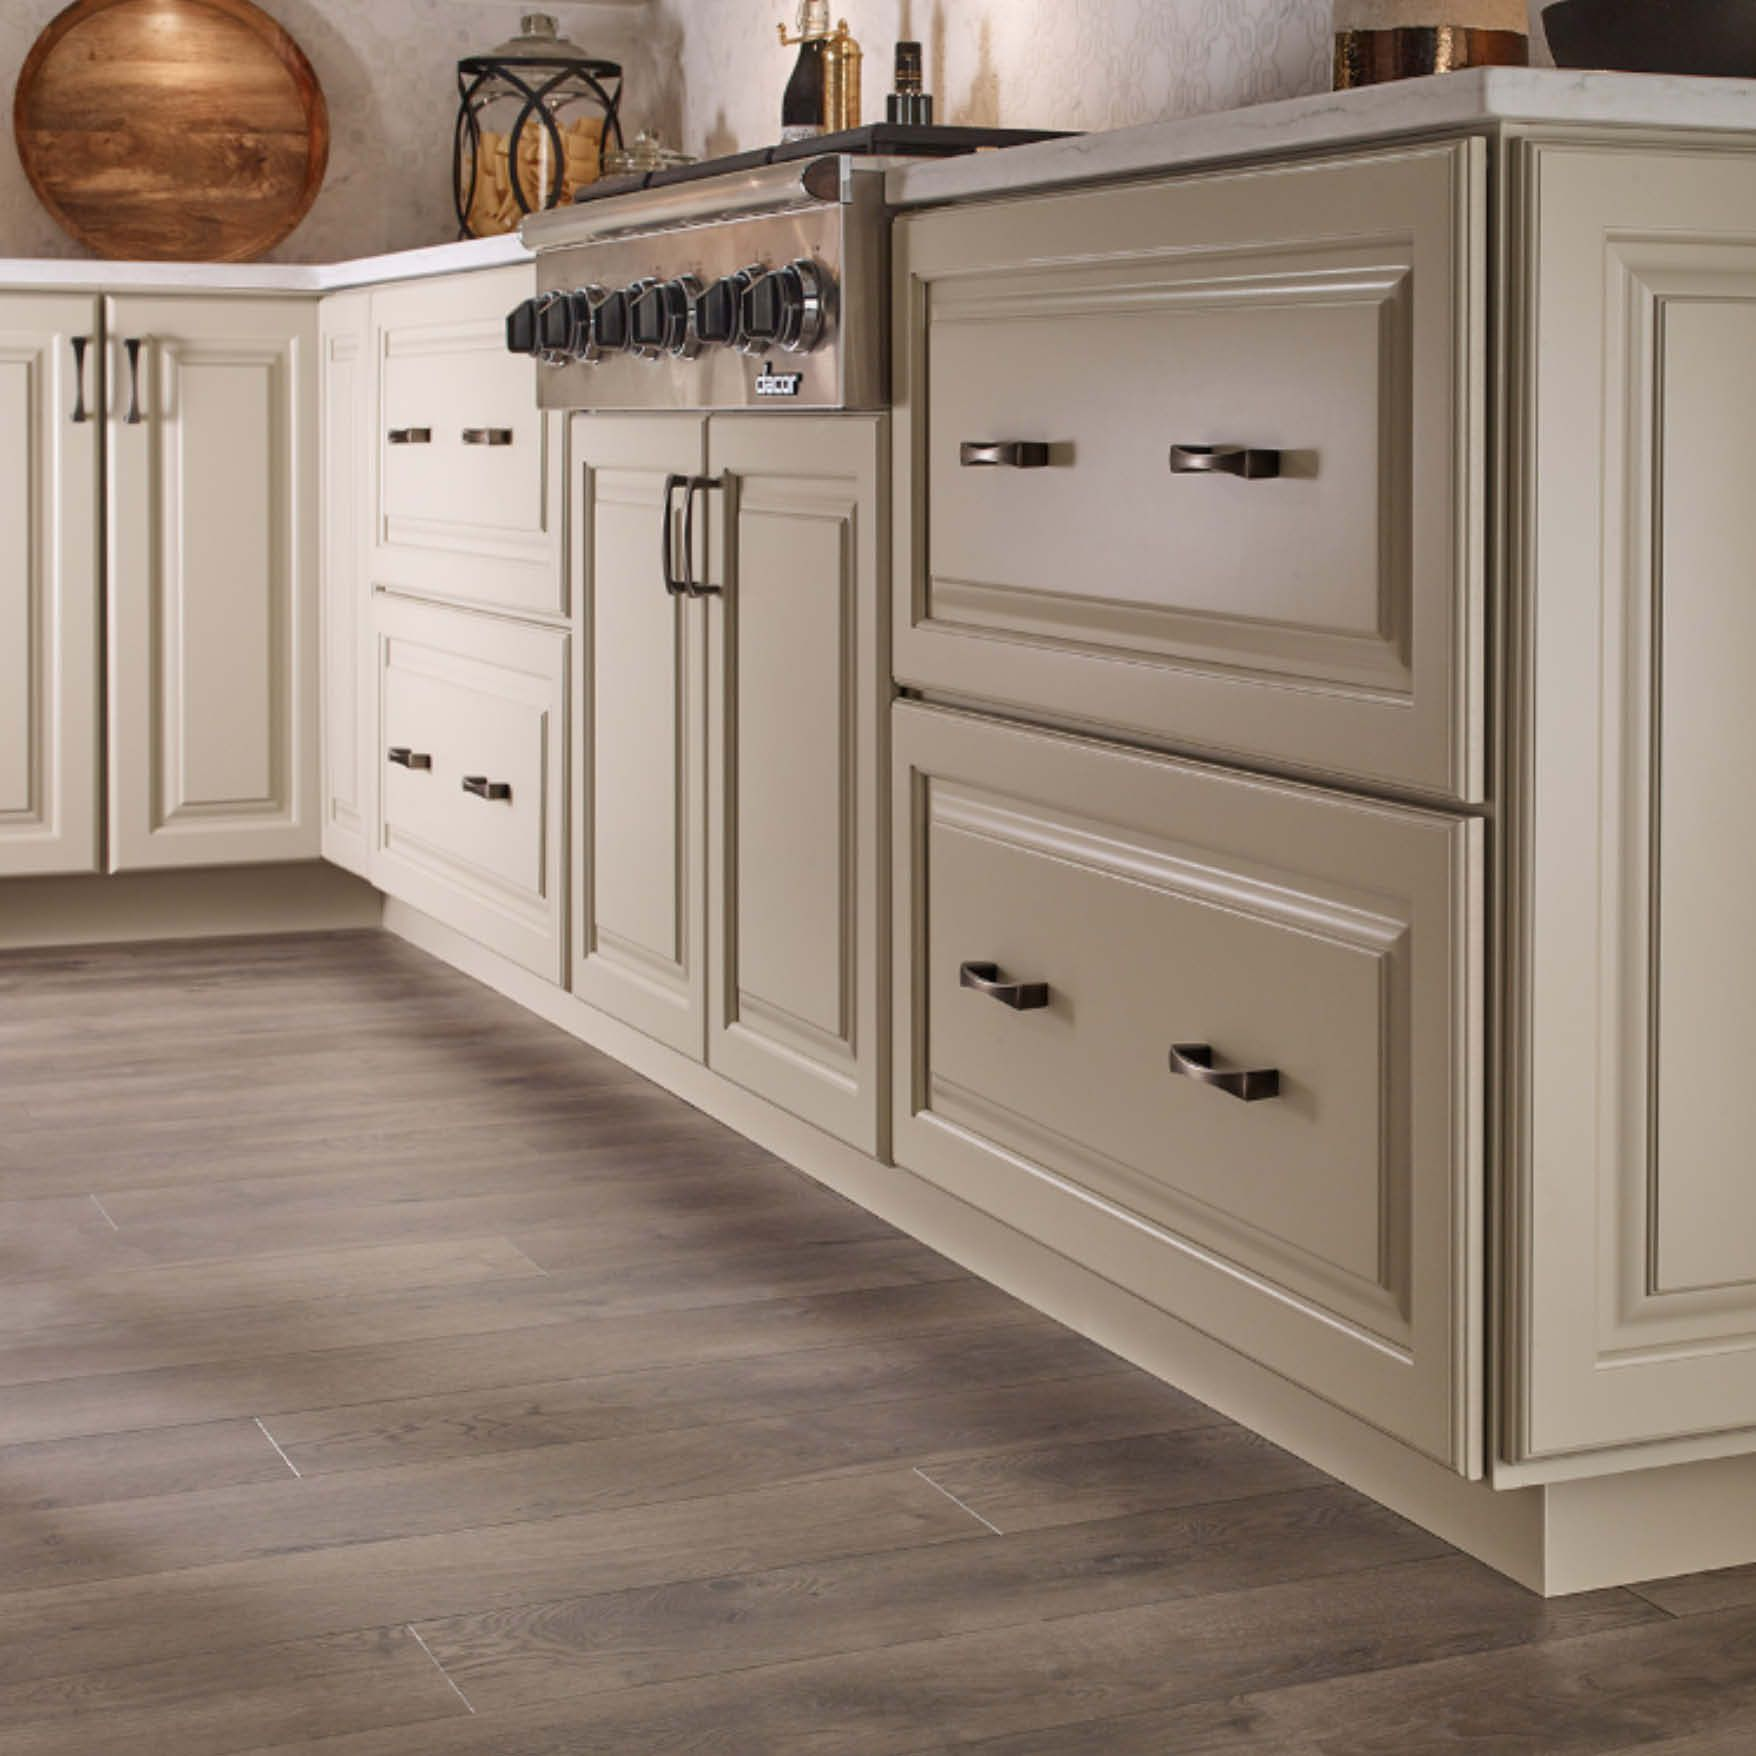 kitchen cabinets shown with door style 660 painted cashmere cashmere kitchen cabinet door on kitchen interior cabinets id=11840